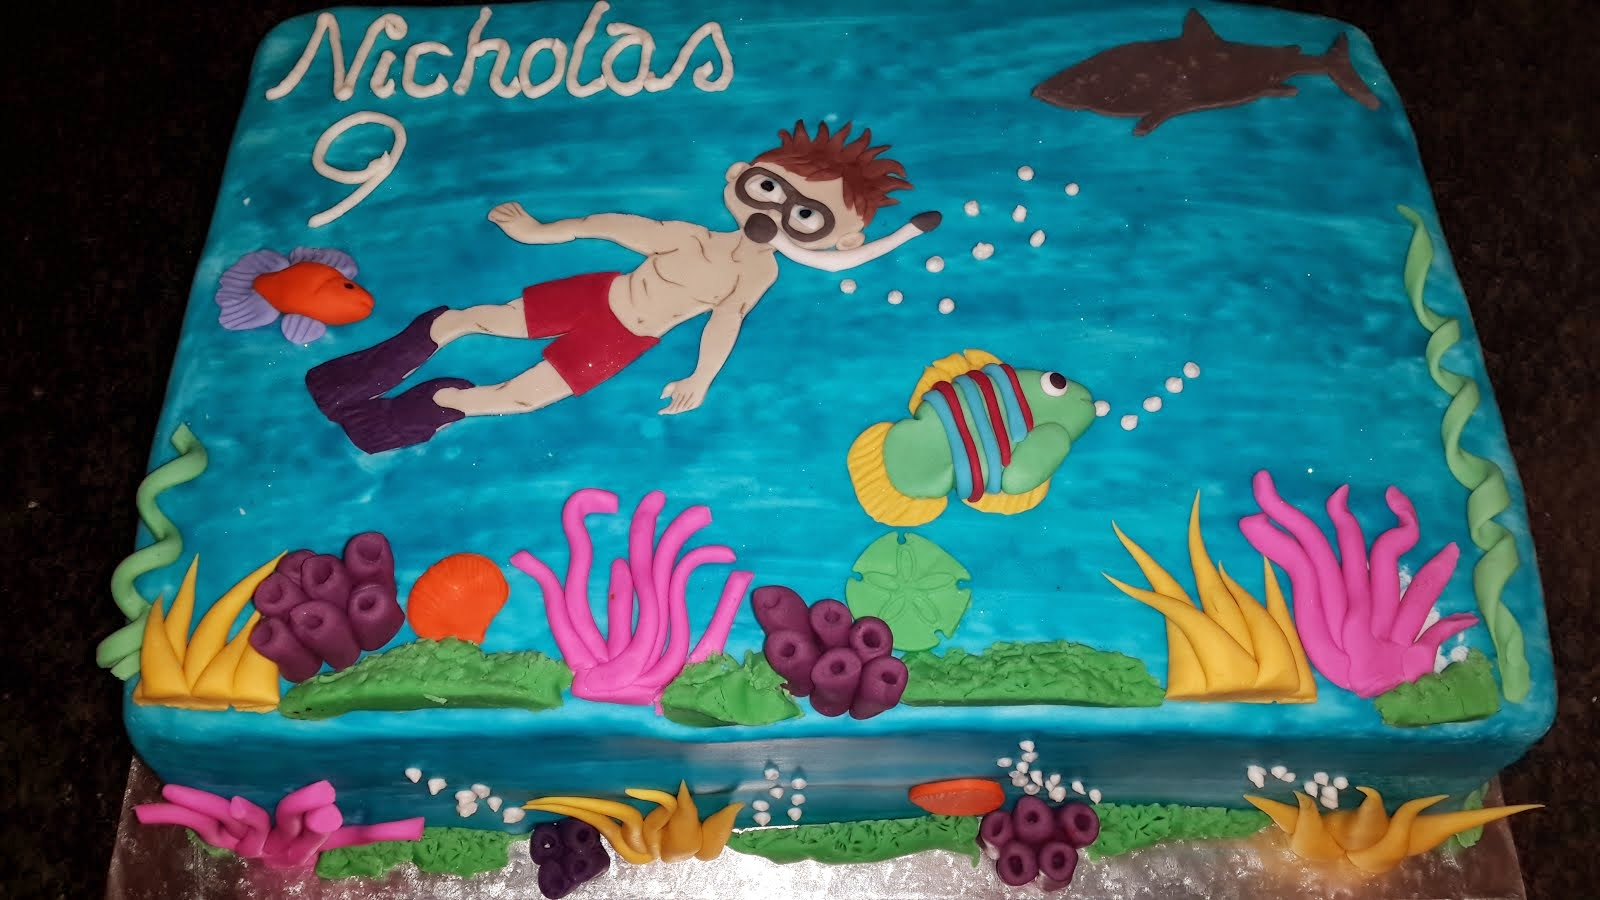 Nicholas's swimming in the sea cake